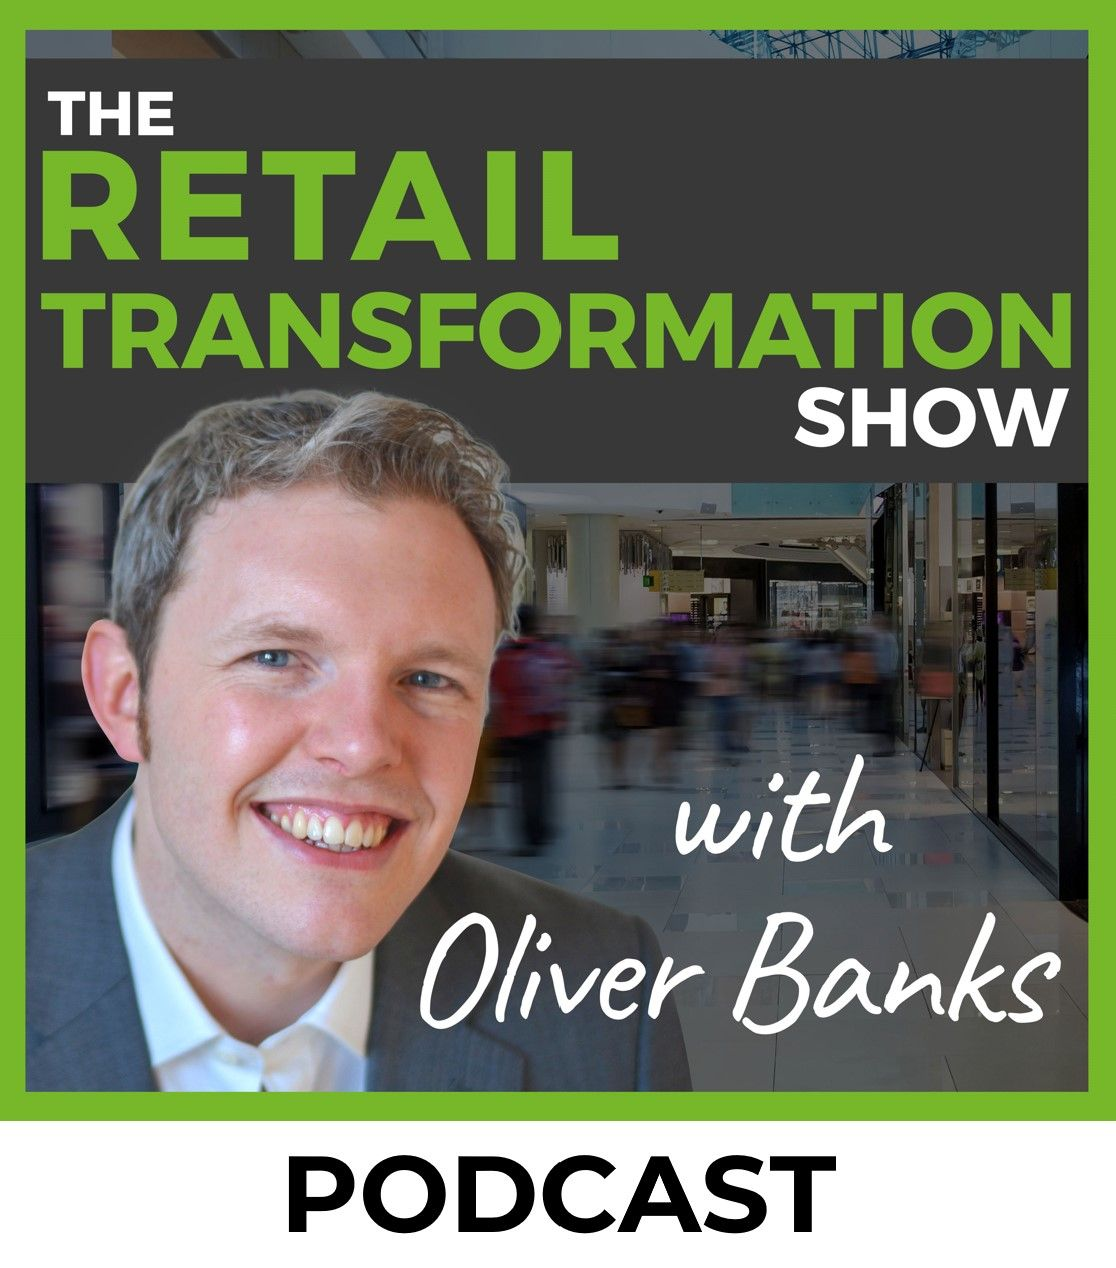 The Retail Transformation Show Podcast with Oliver Banks